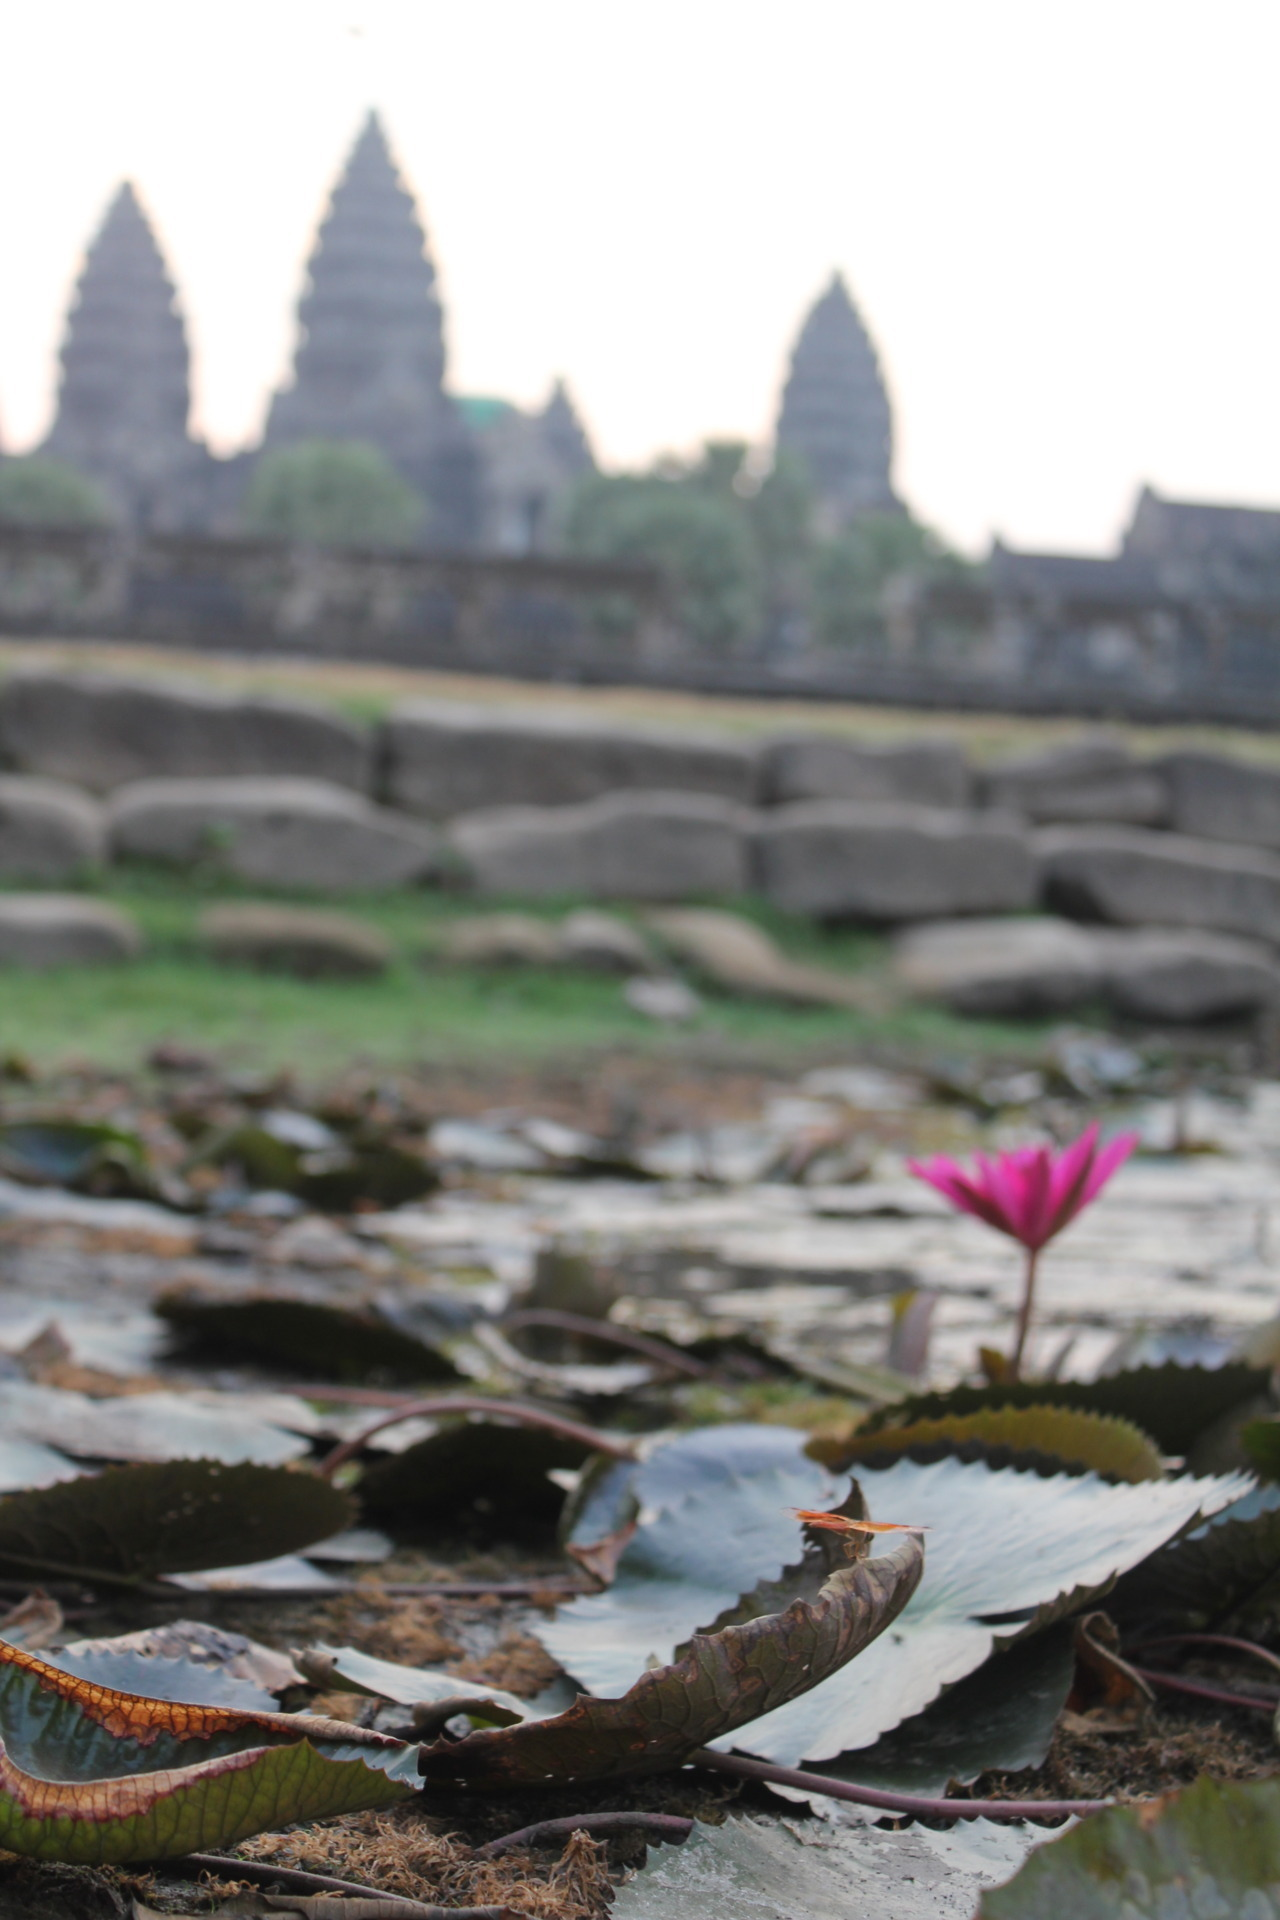 Lily and dragonfly in the lily pond in front of Angkor Wat.